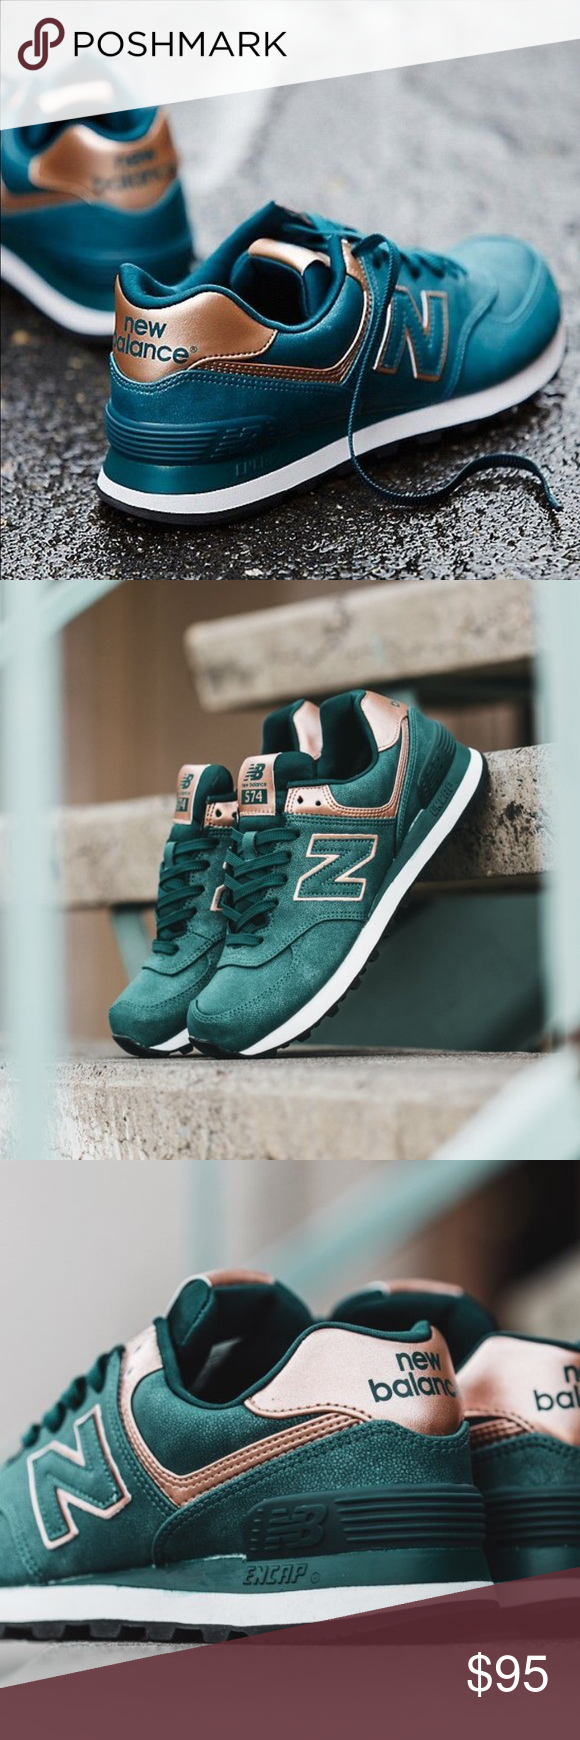 new balance emerald rose gold